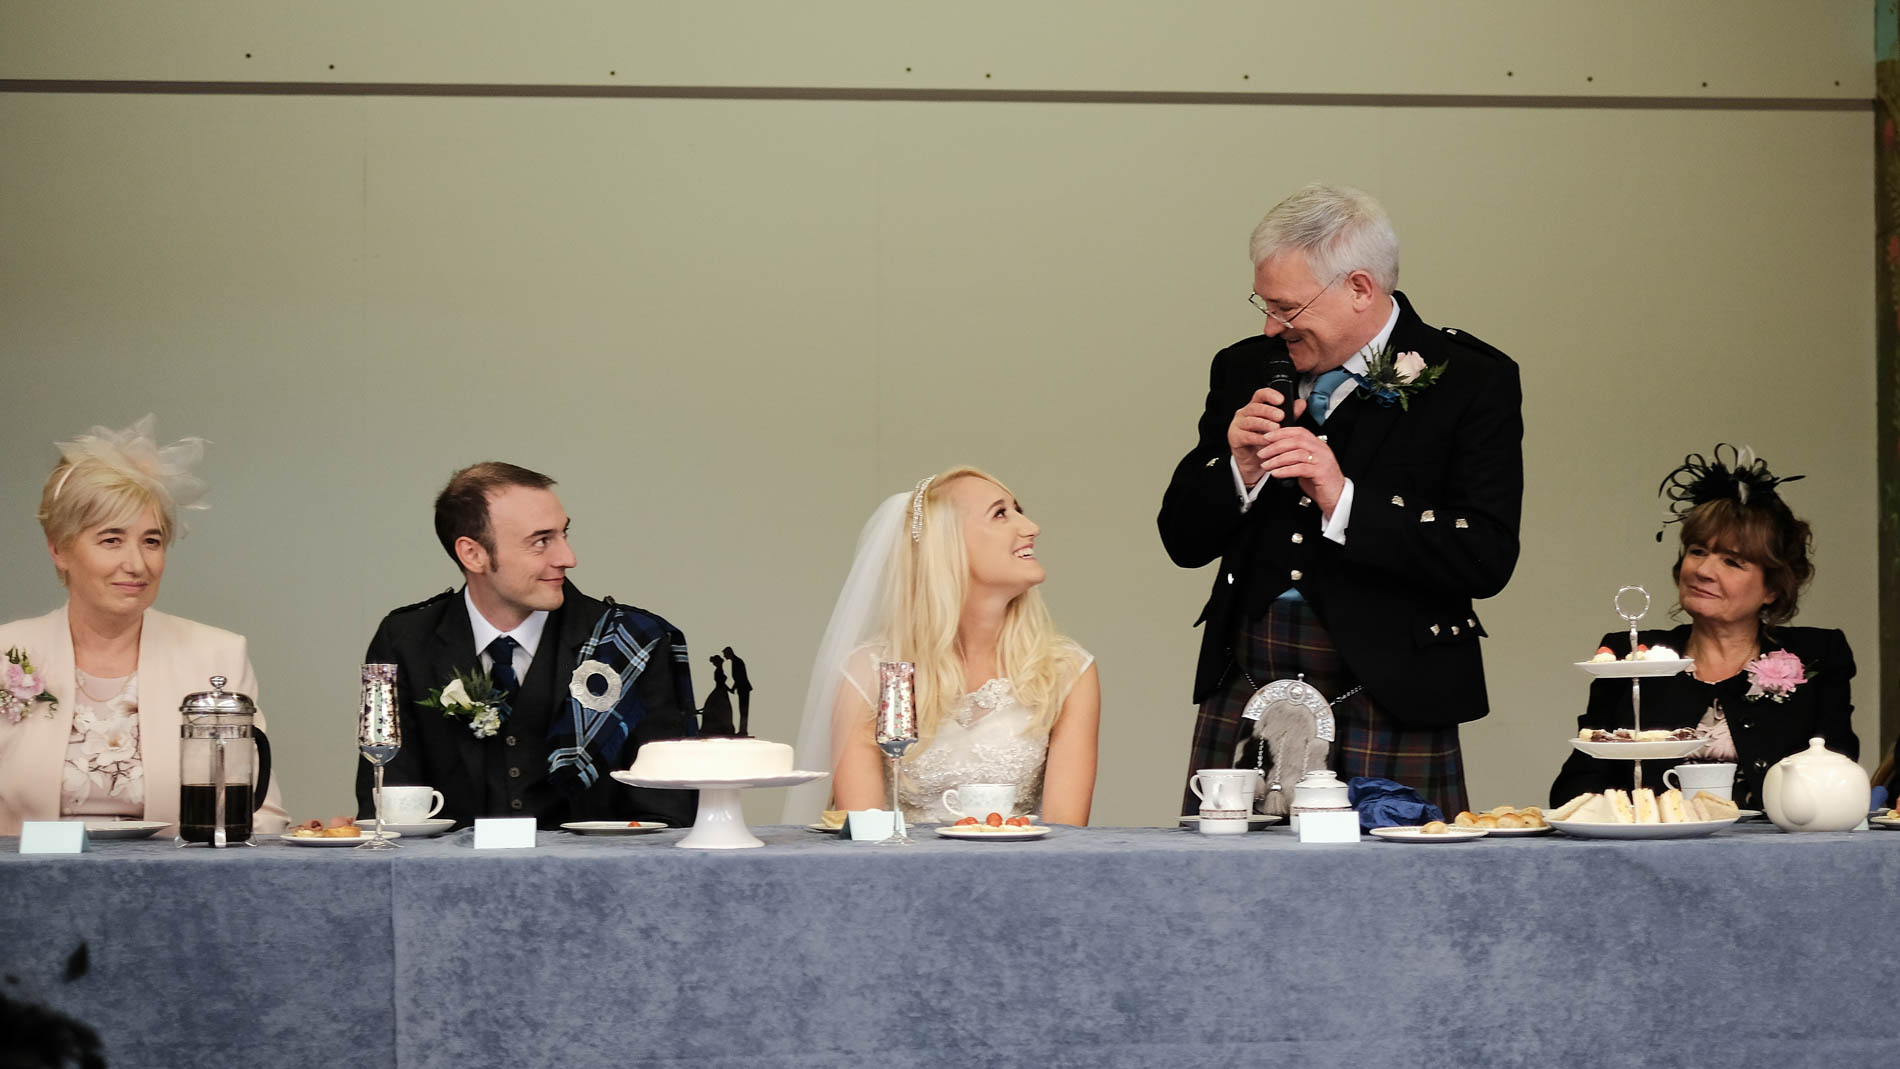 Colour photograph of the father of the bride giving a speech at Saint Andrew's Hall, Clermiston